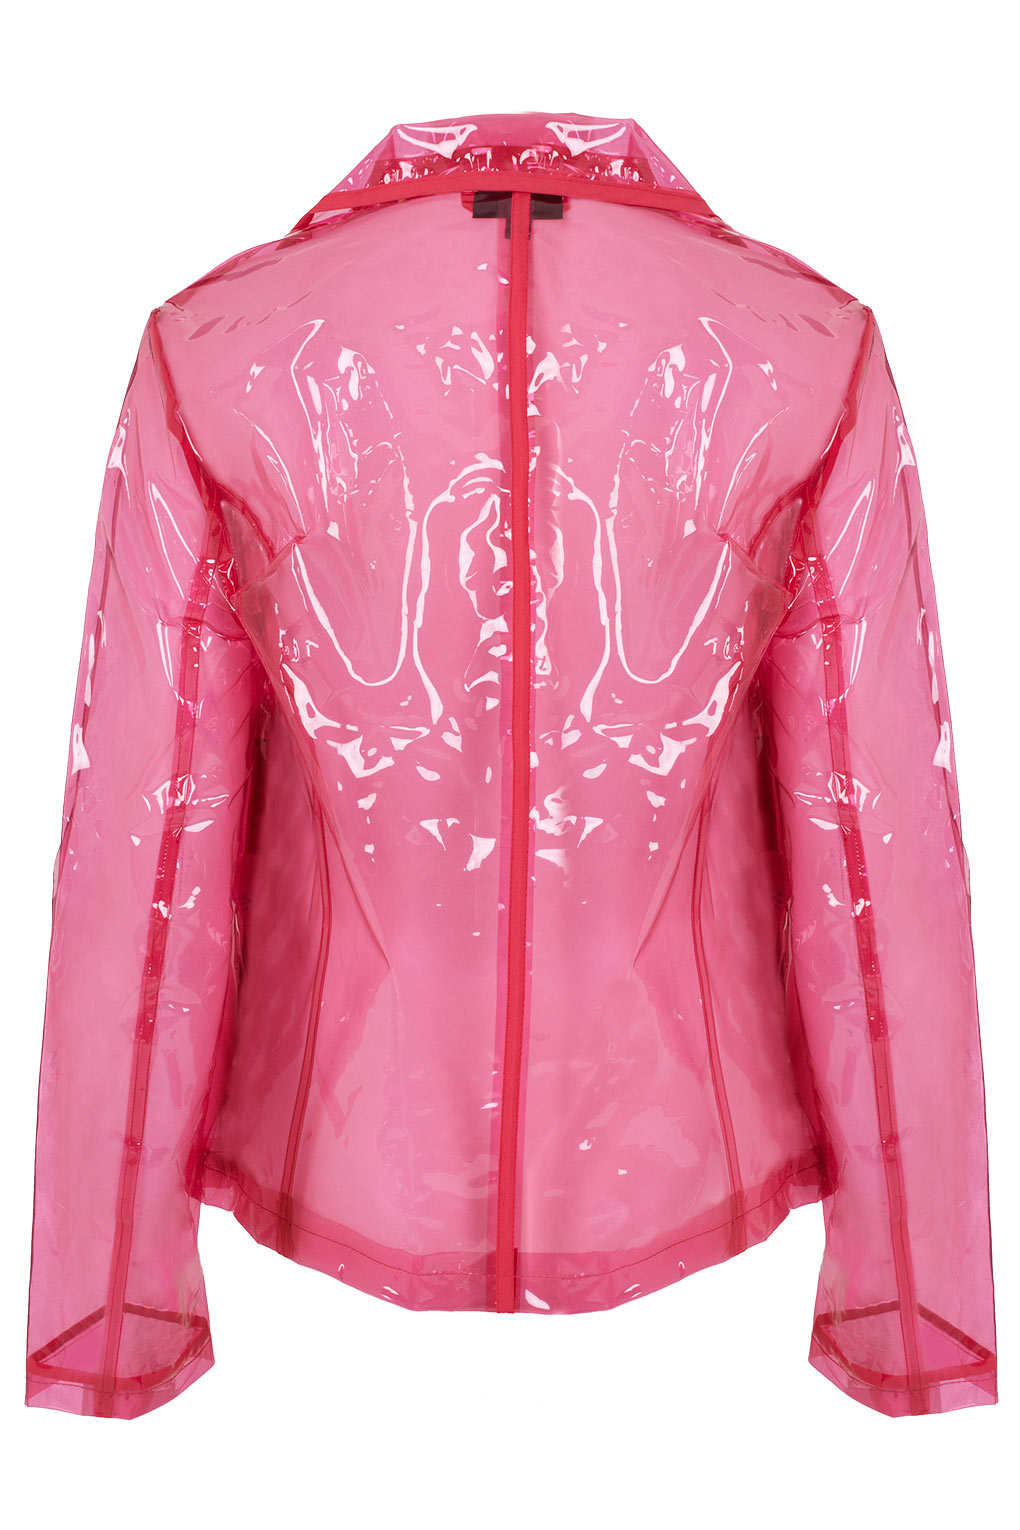 Topshop Pink Clear Plastic Jacket In Pink Lyst